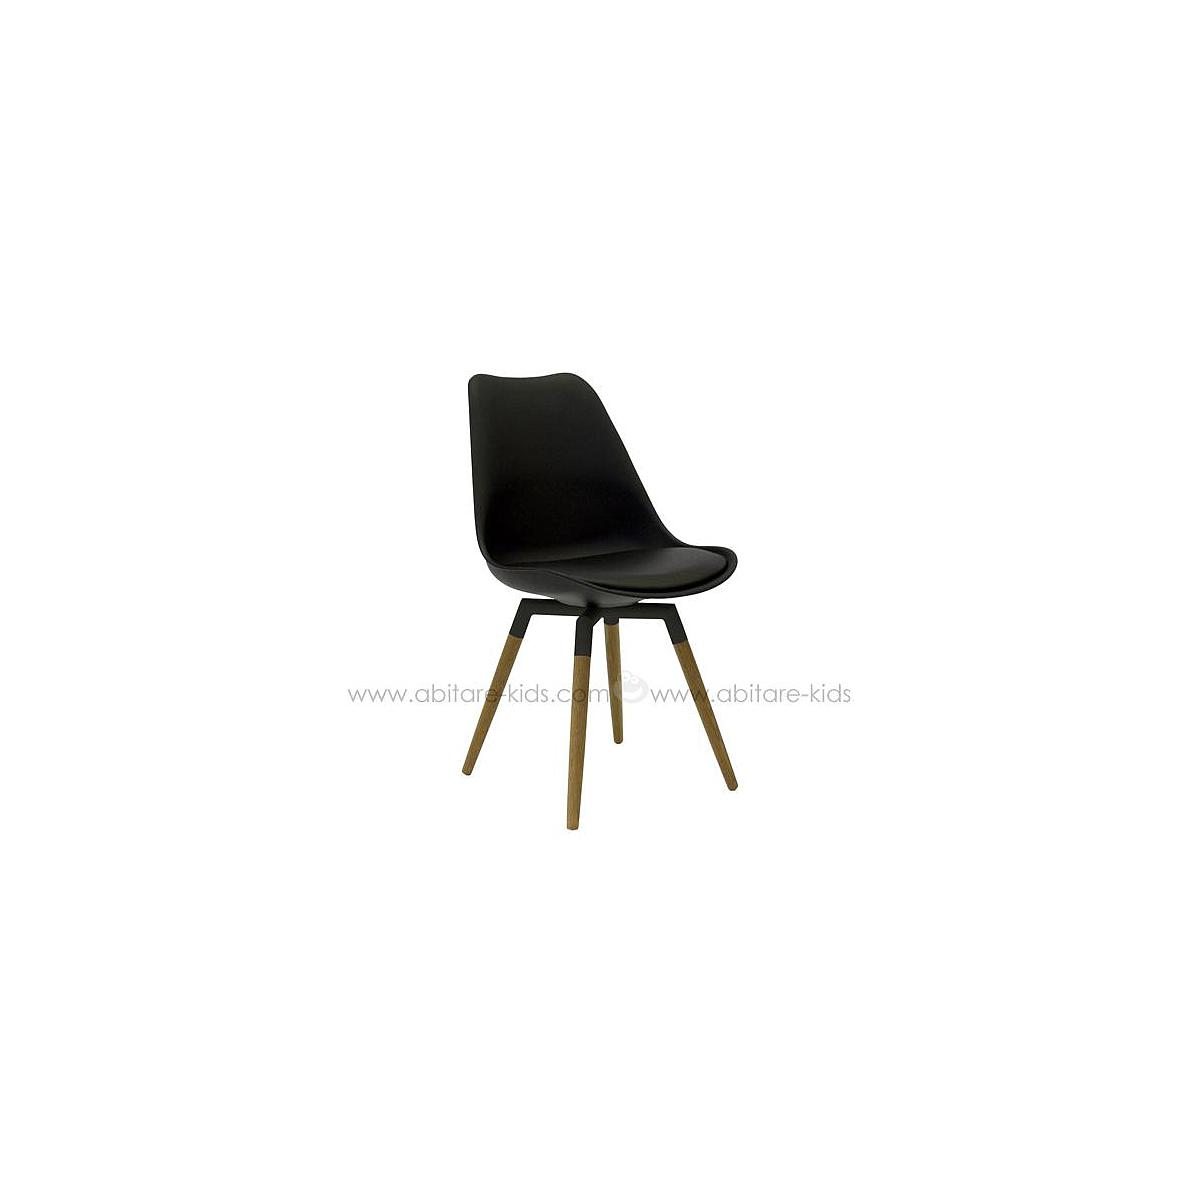 C-BAR by Tenzo Chaise Gina-Fido Assise noire et pied noir/chêne